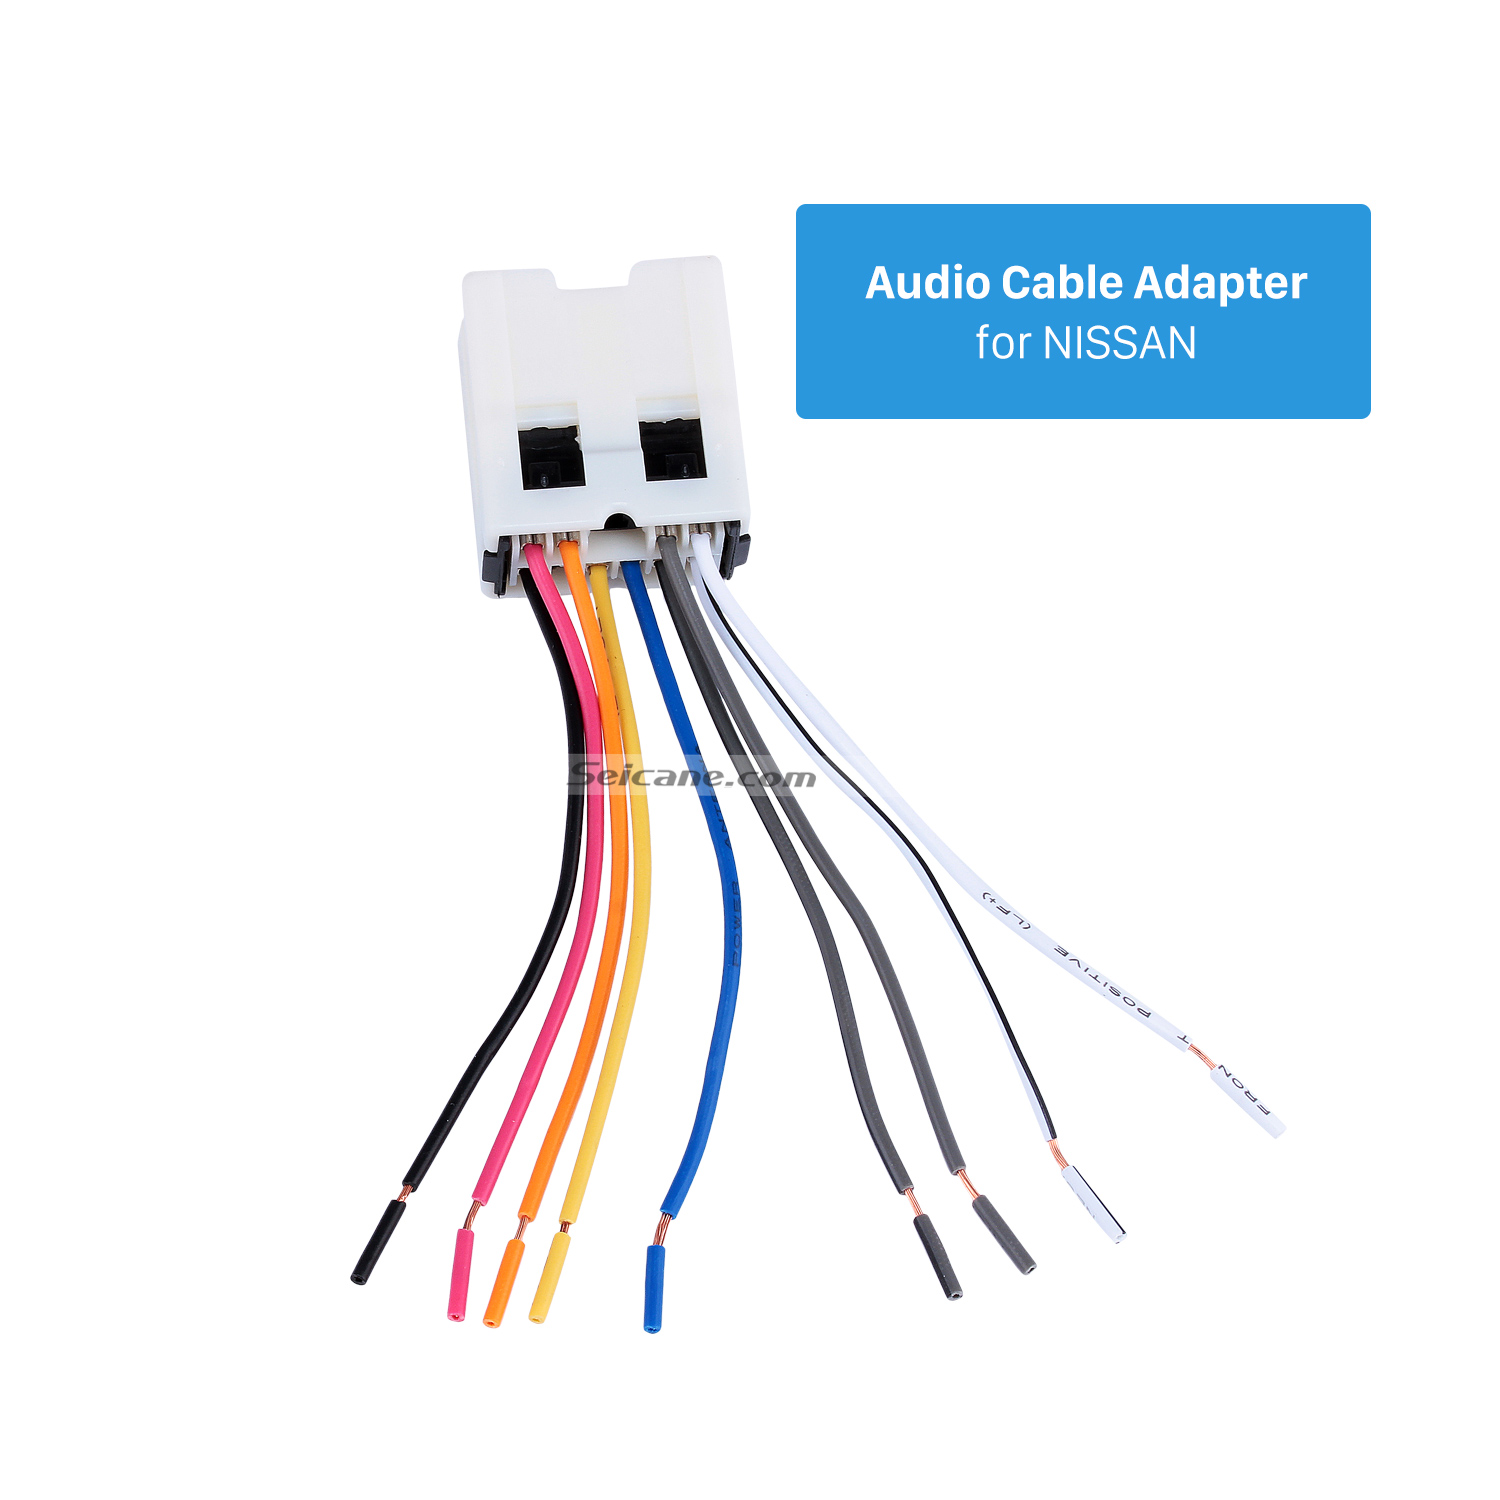 Seicane Audio Cable Wiring Harness Adapter For Nissan Bluebird Paladin Sunny Cefiro Fuga Infiniti In Speaker Line From Automobiles Motorcycles On